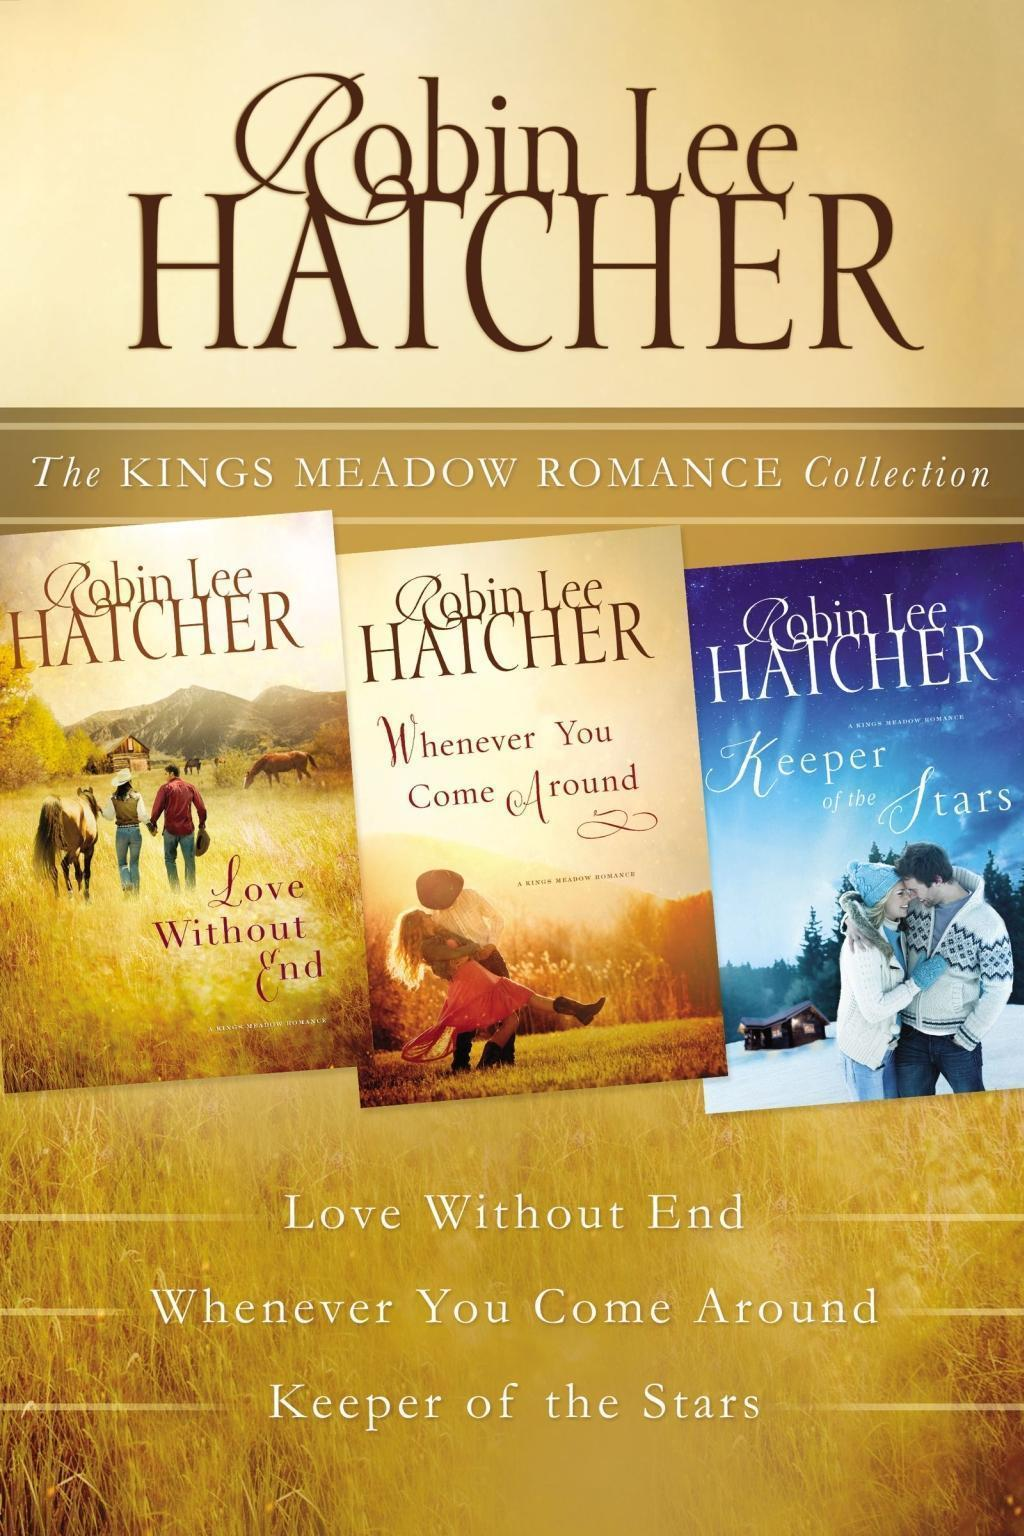 The Kings Meadow Romance Collection